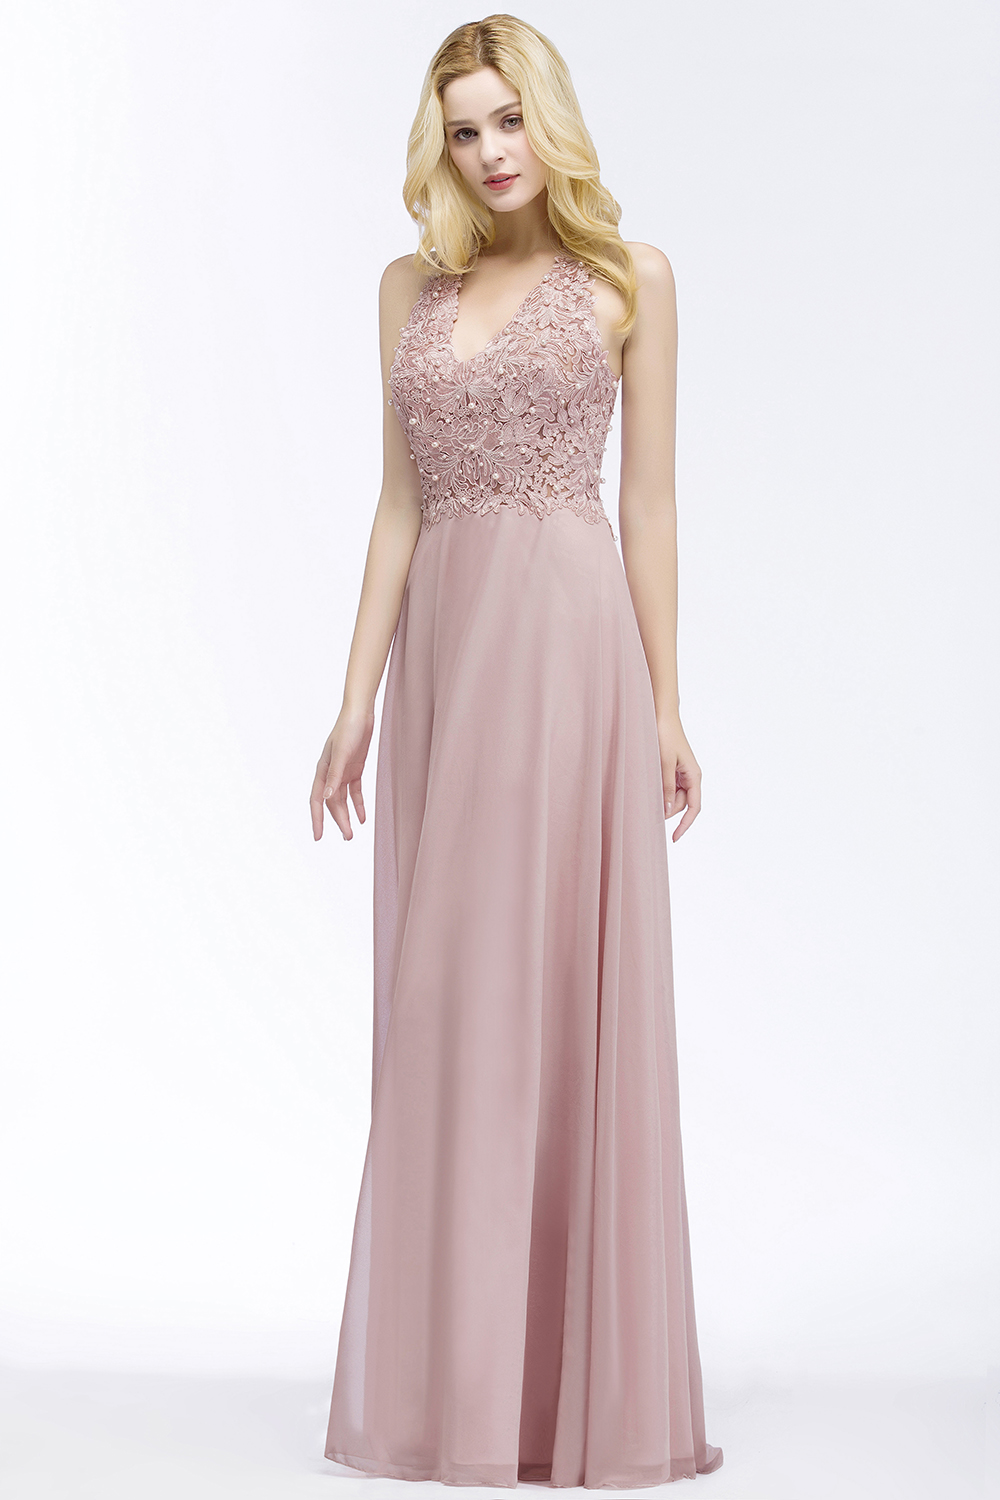 Elegant A Line Illusion Back with Pearls Floor Length Evening Dress 1